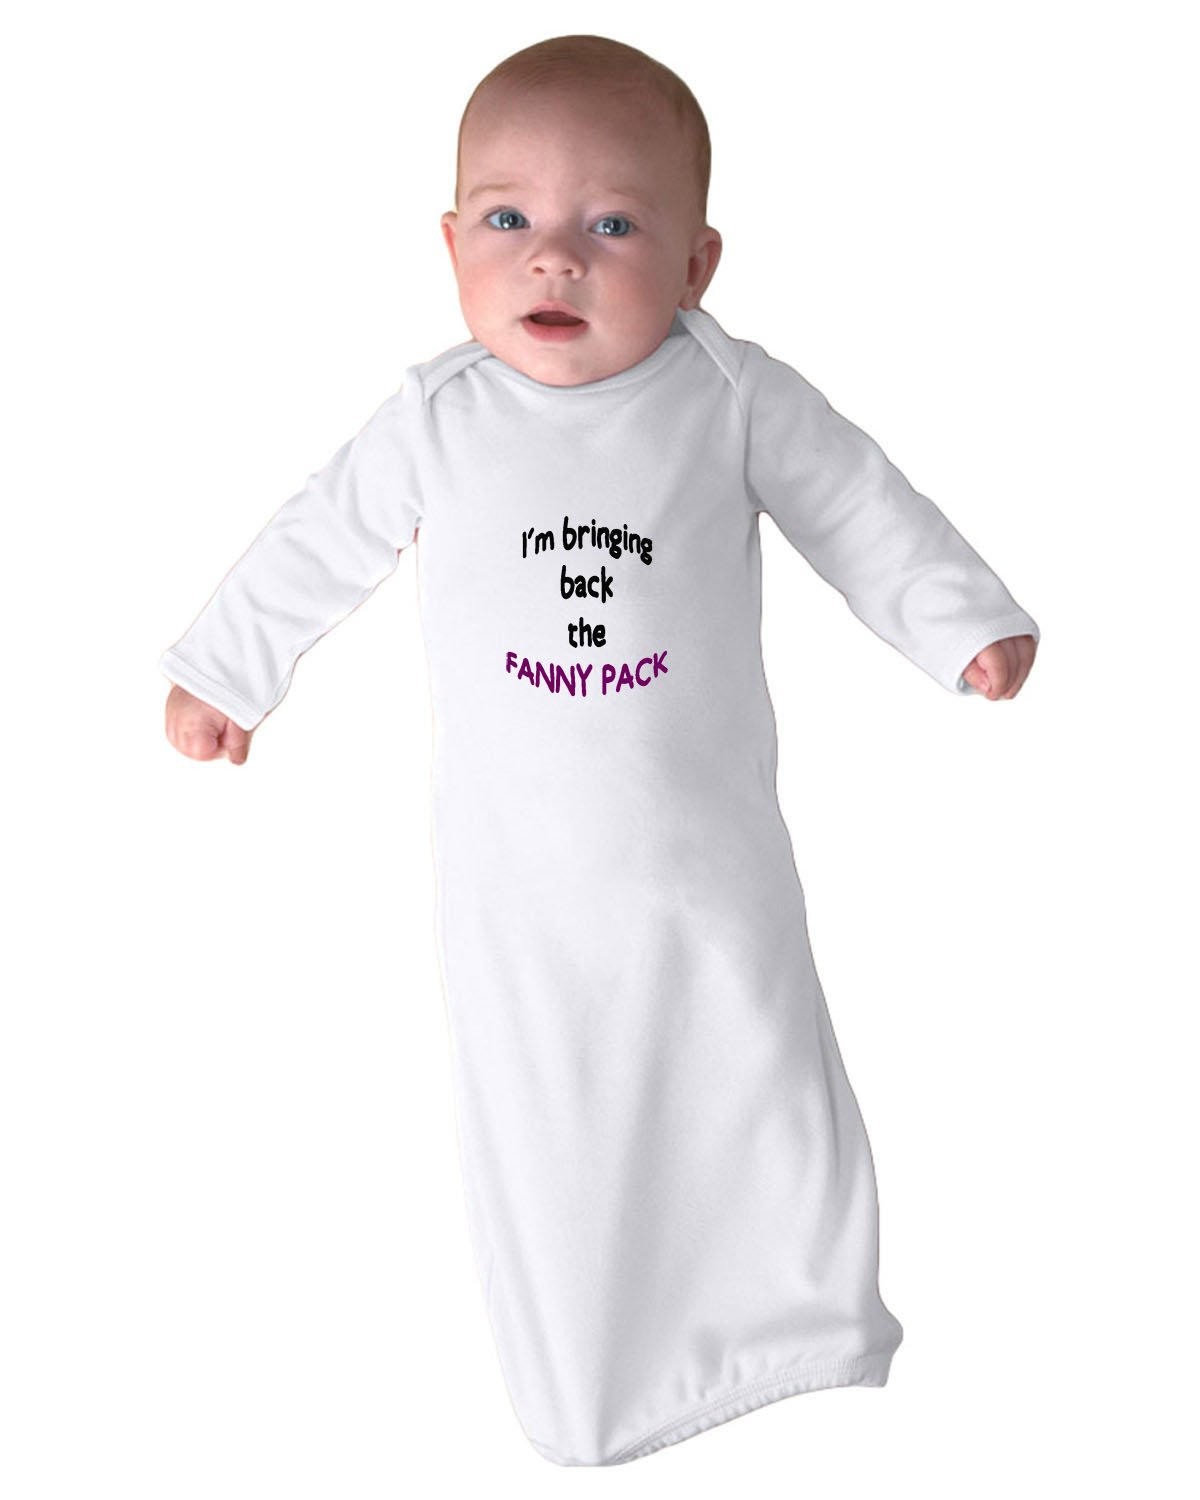 I'M Bringing Back The Fanny Pack Infant Baby Rib Layette Sleeping Gown Only White